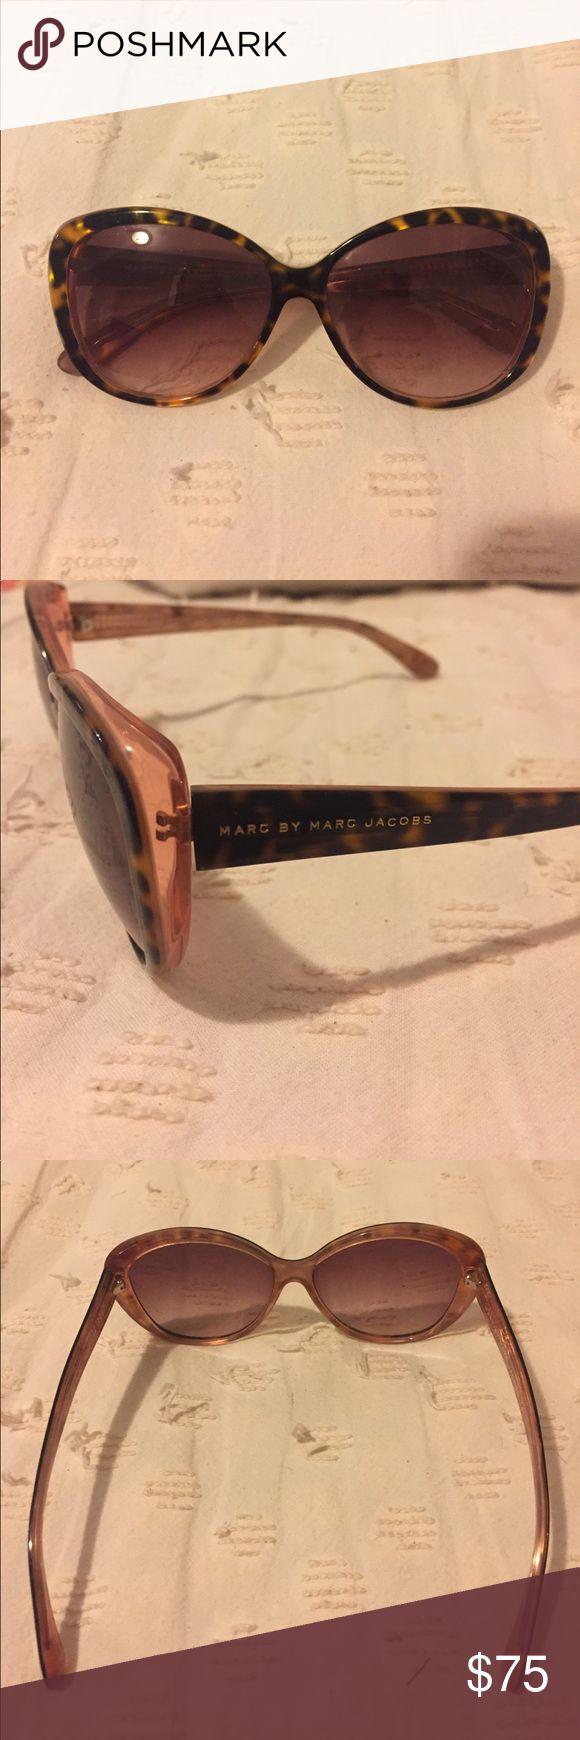 Marc by Marc Jacobs Cat Eye Sunglasses Beautiful tortoise and pink toned cat eye sunglasses. Bought a few summers ago and haven't worn in a bit. Authentic Marc by Marc Jacob from Nordstrom. Marc By Marc Jacobs Accessories Sunglasses